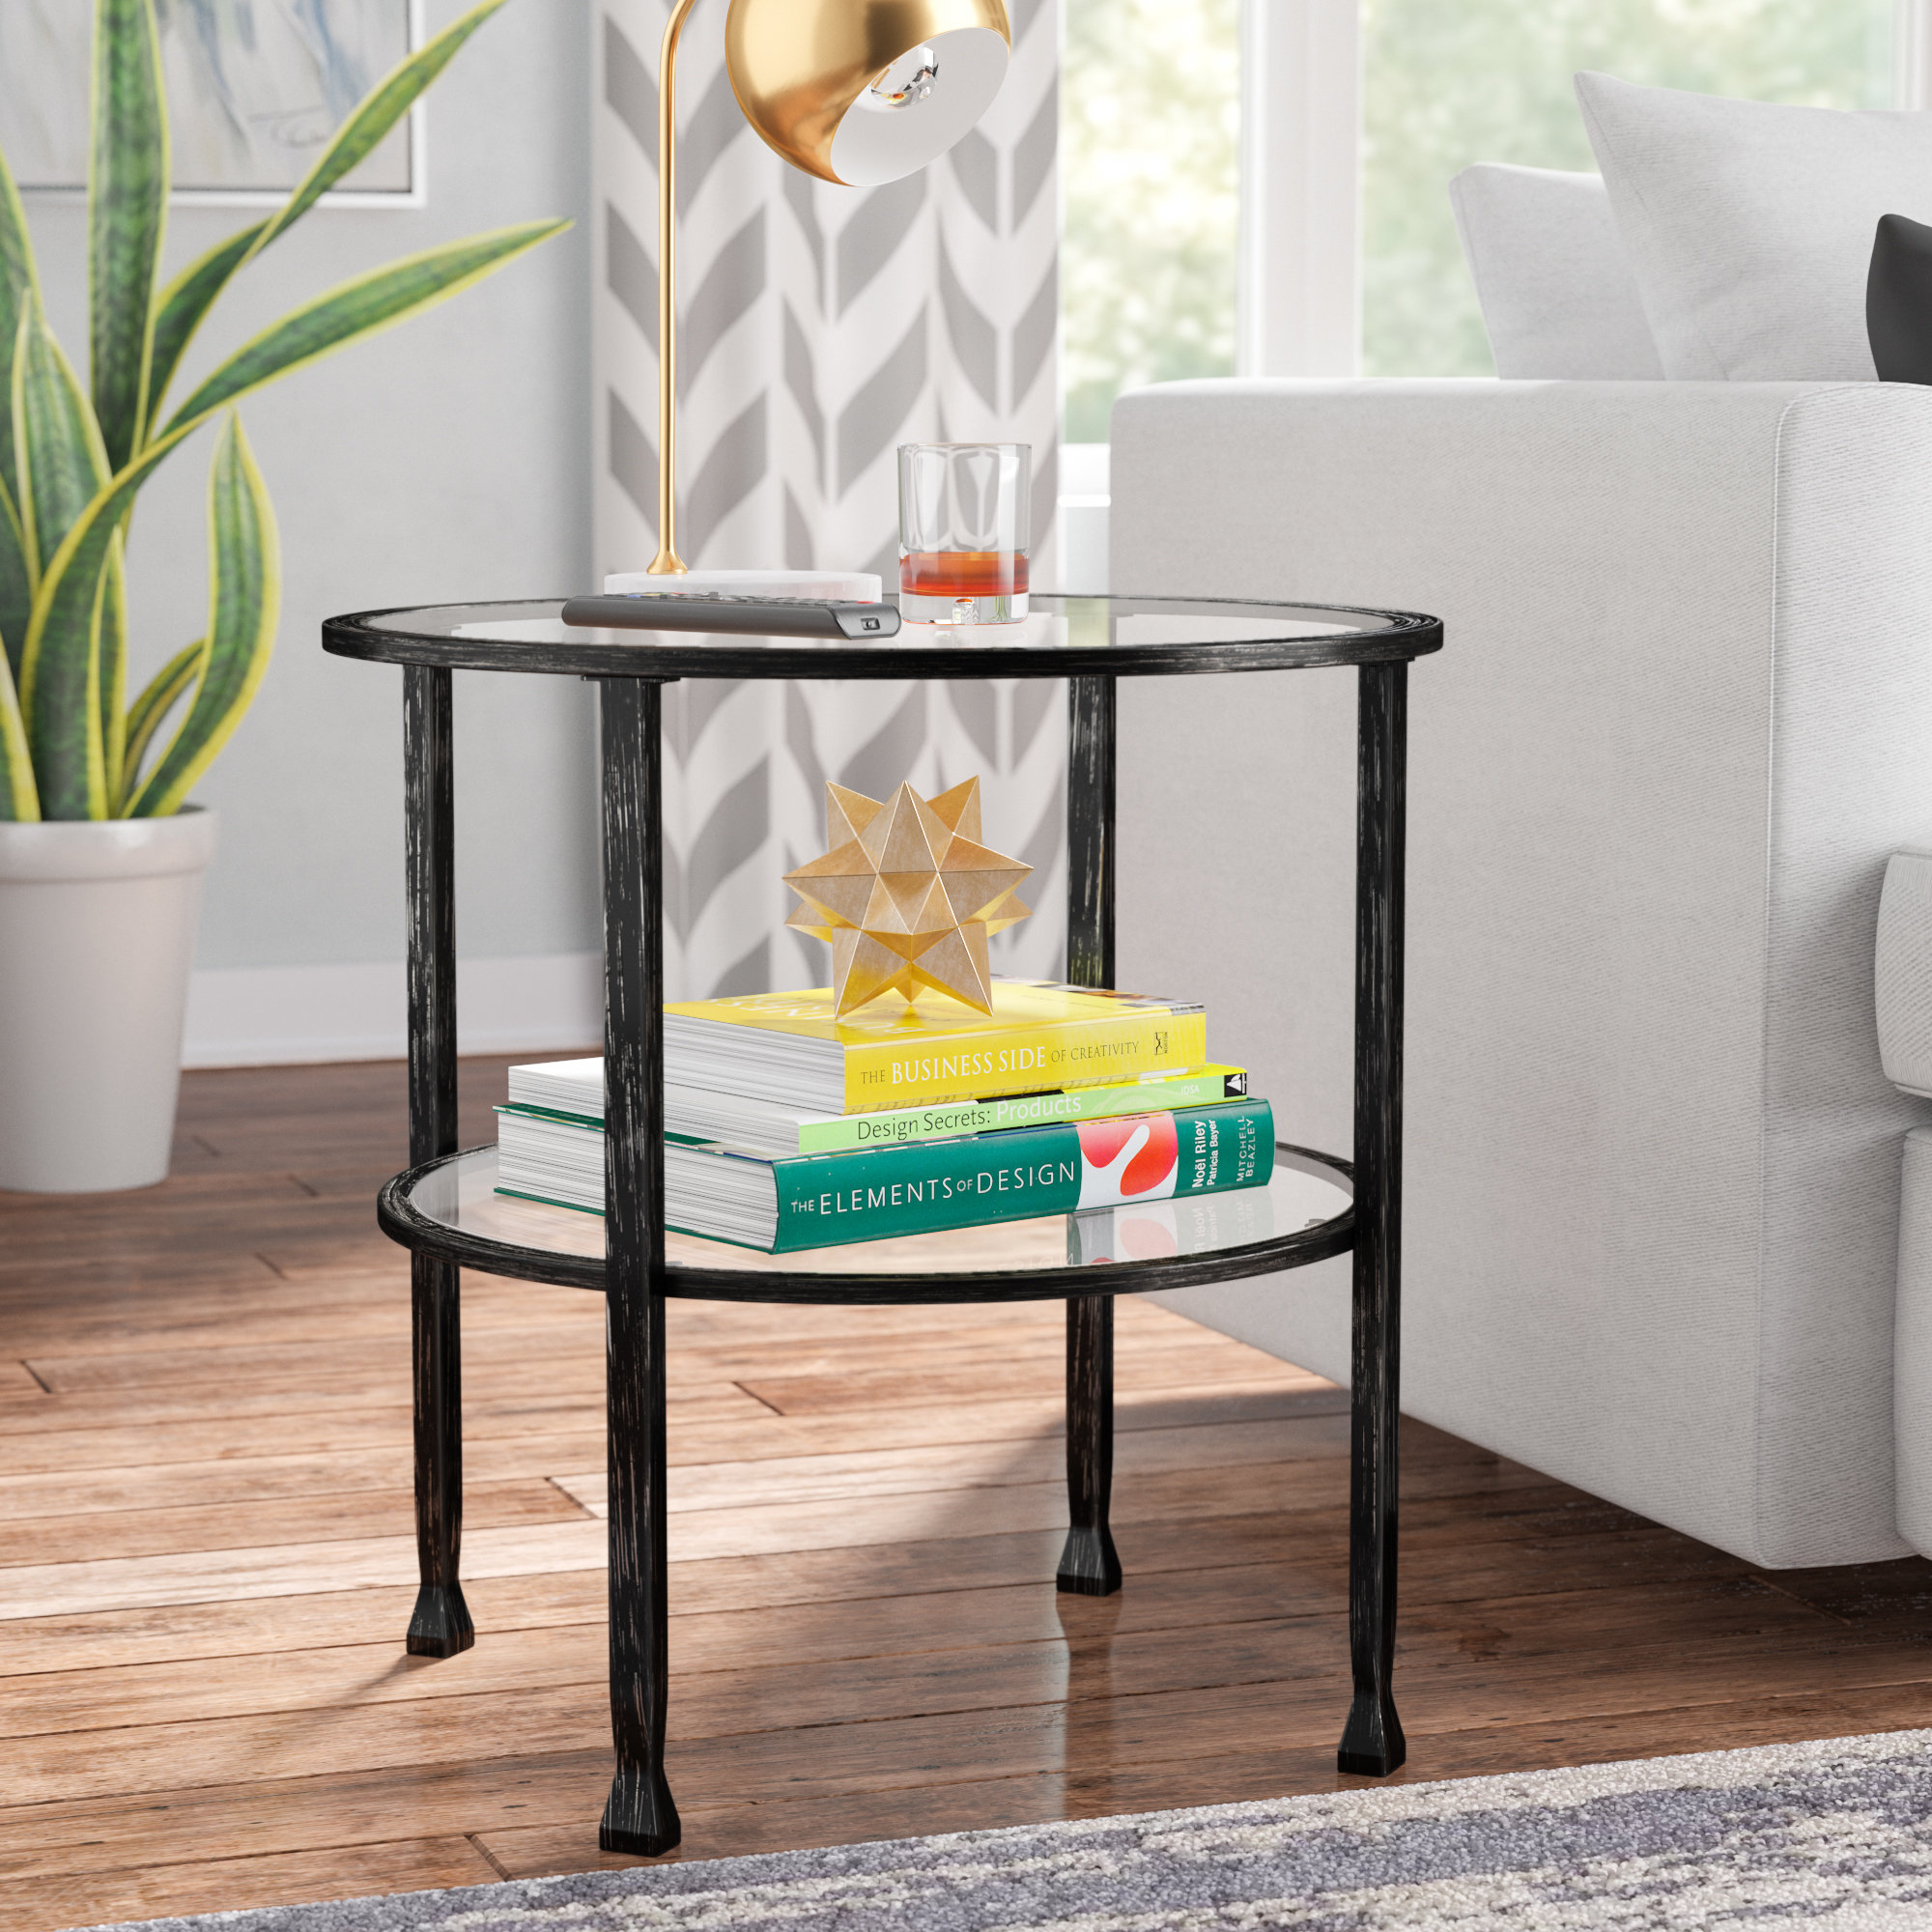 orren ellis casas end table reviews high round accent easy diy coffee couch yellow desk lamp piece west elm branch turned leg reproduction vintage furniture pier imports patio